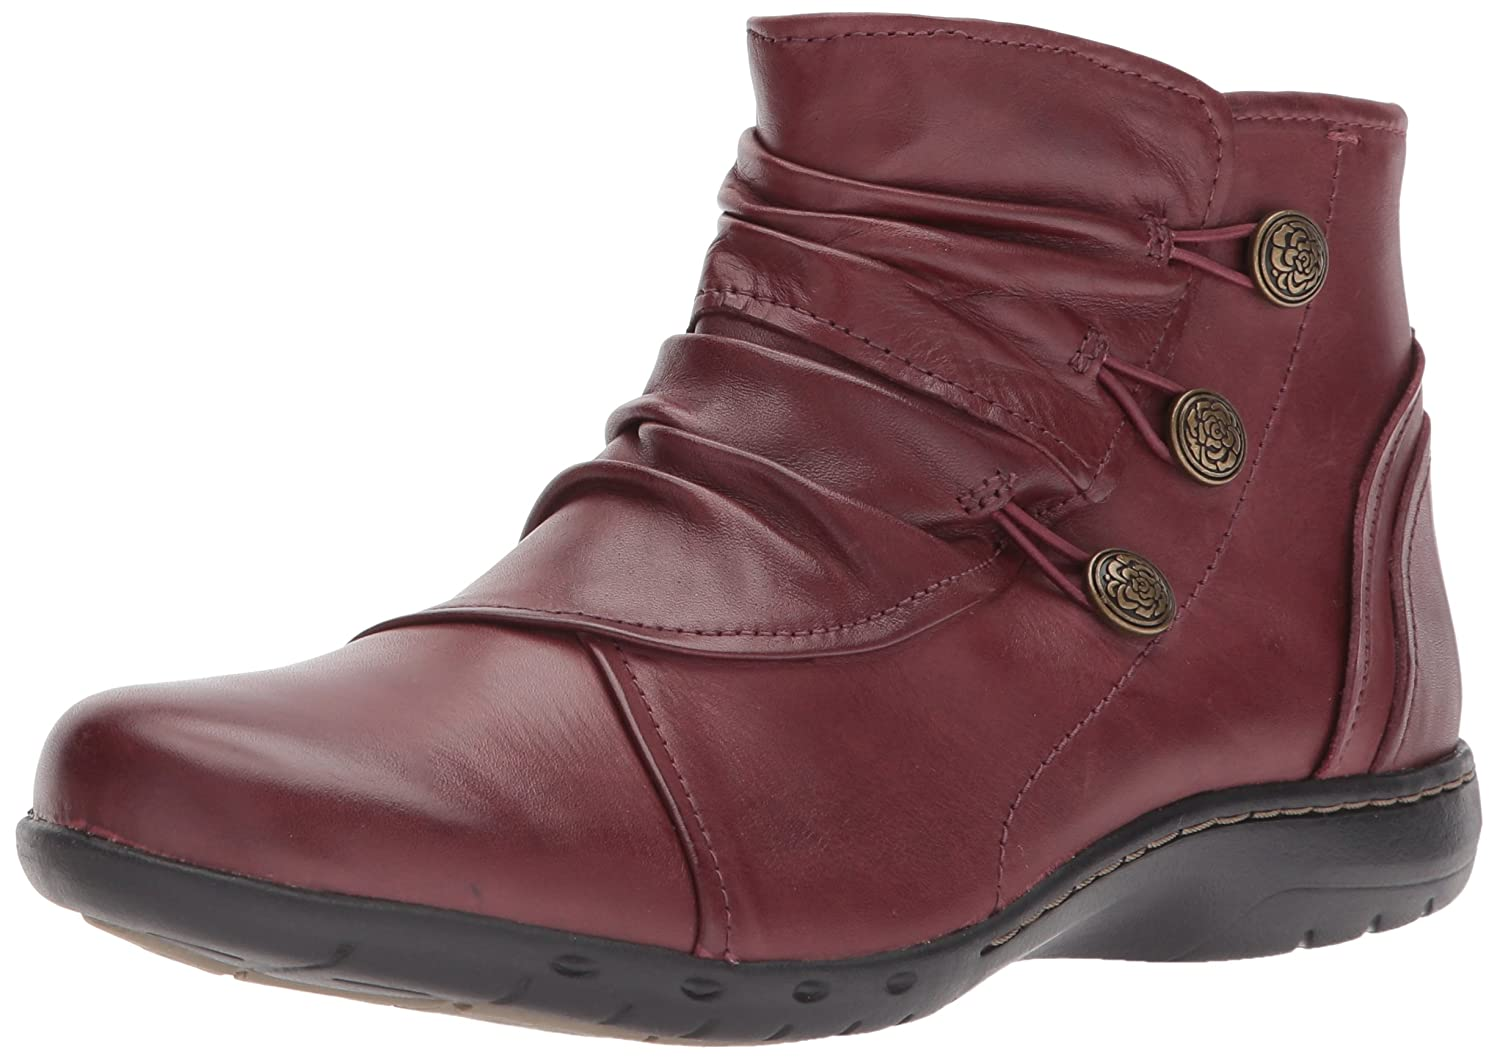 Cobb Hill Women's Penfield Boot B01MYBYSA5 7.5 B(M) US|Bordeaux Leather